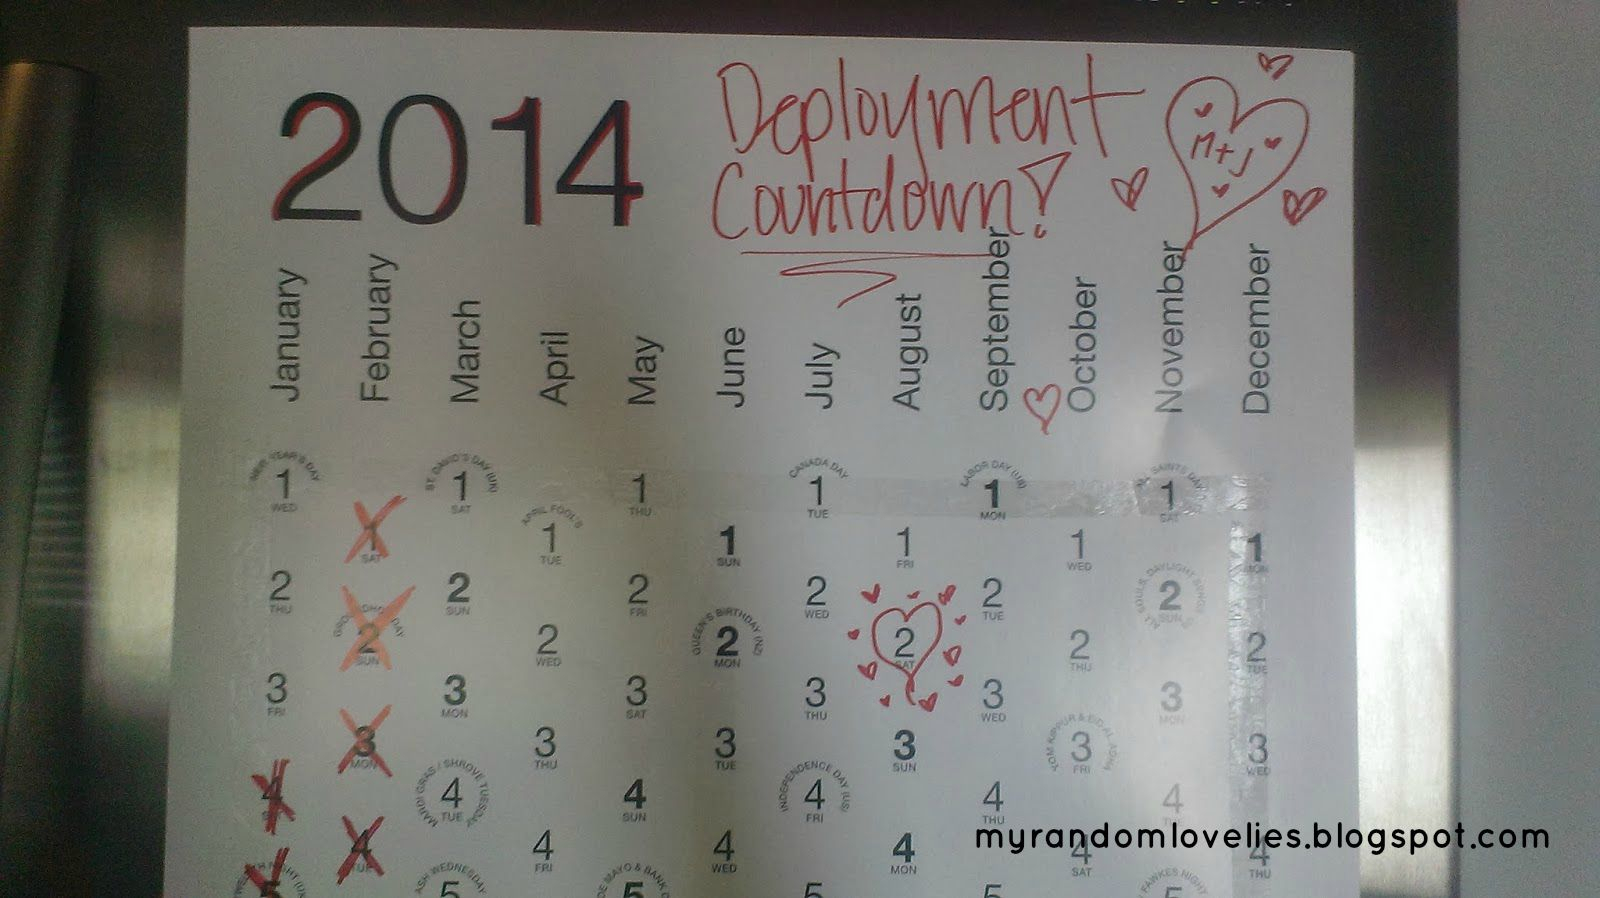 Deployment Countdown | My Random Lovelies for Deployment Countdown Calendar